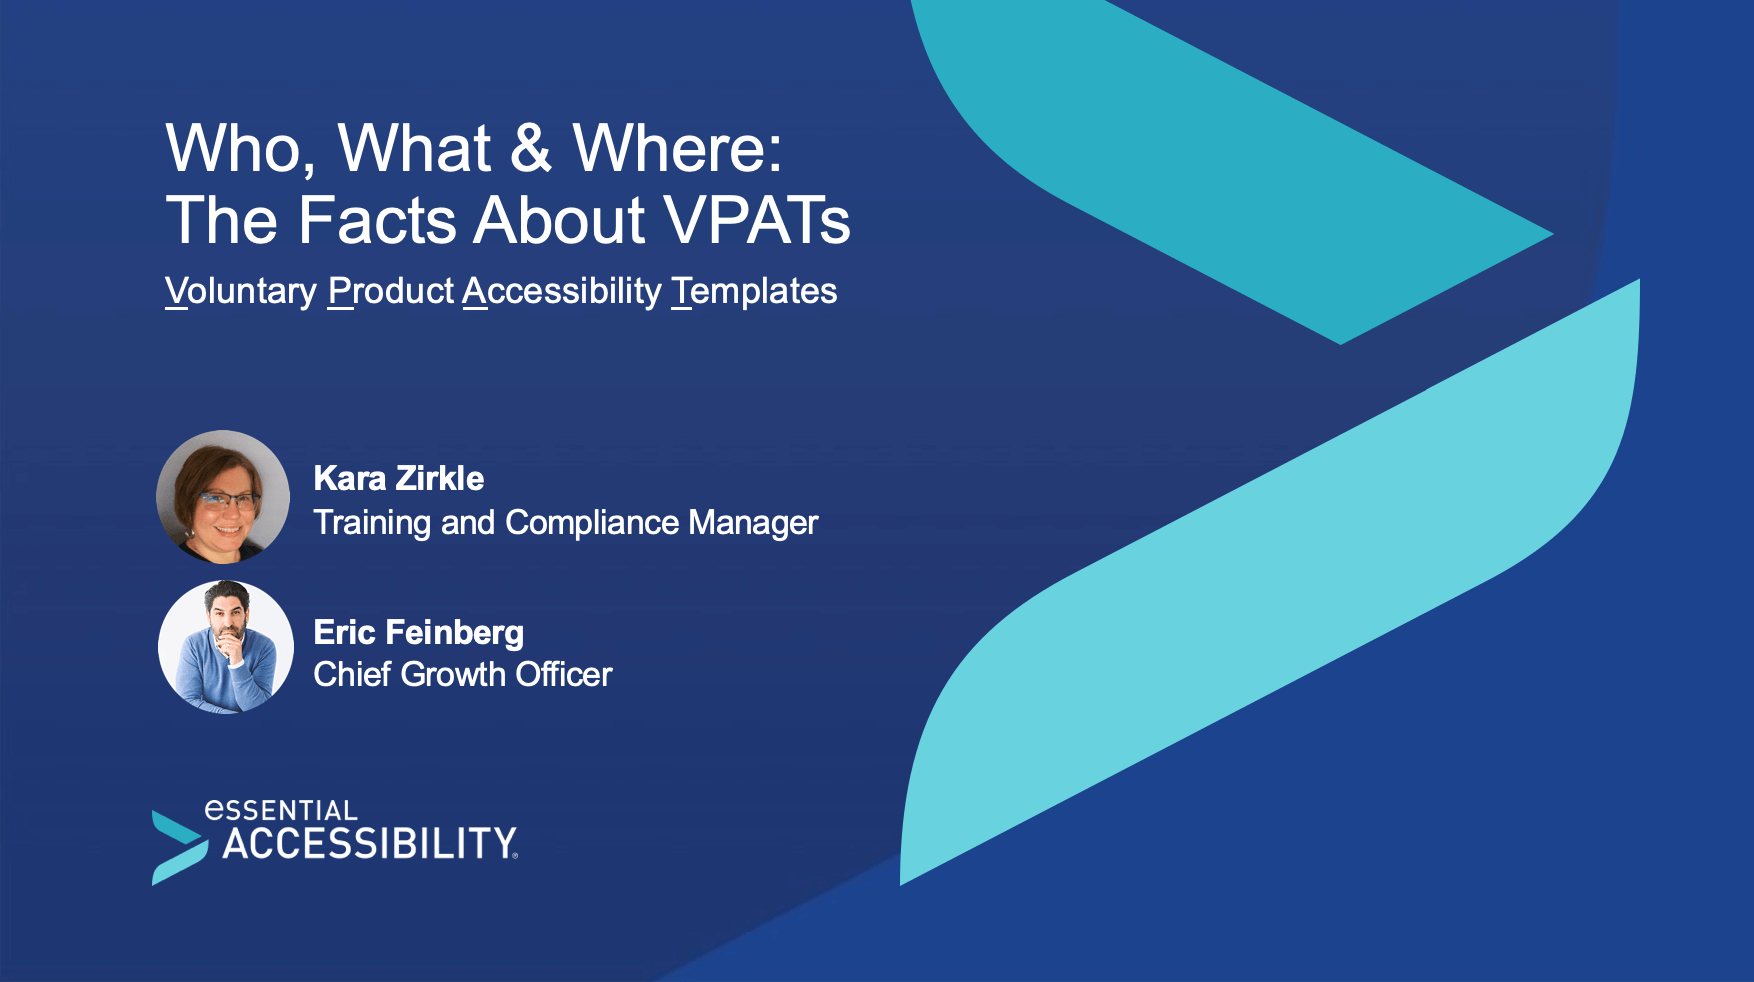 VPAT webinar poster: Who, What & Where: The Facts About VPATs with Kara Zirkle (Training and Compliance Manager) and Eric Feinberg (Chief Growth Officer)